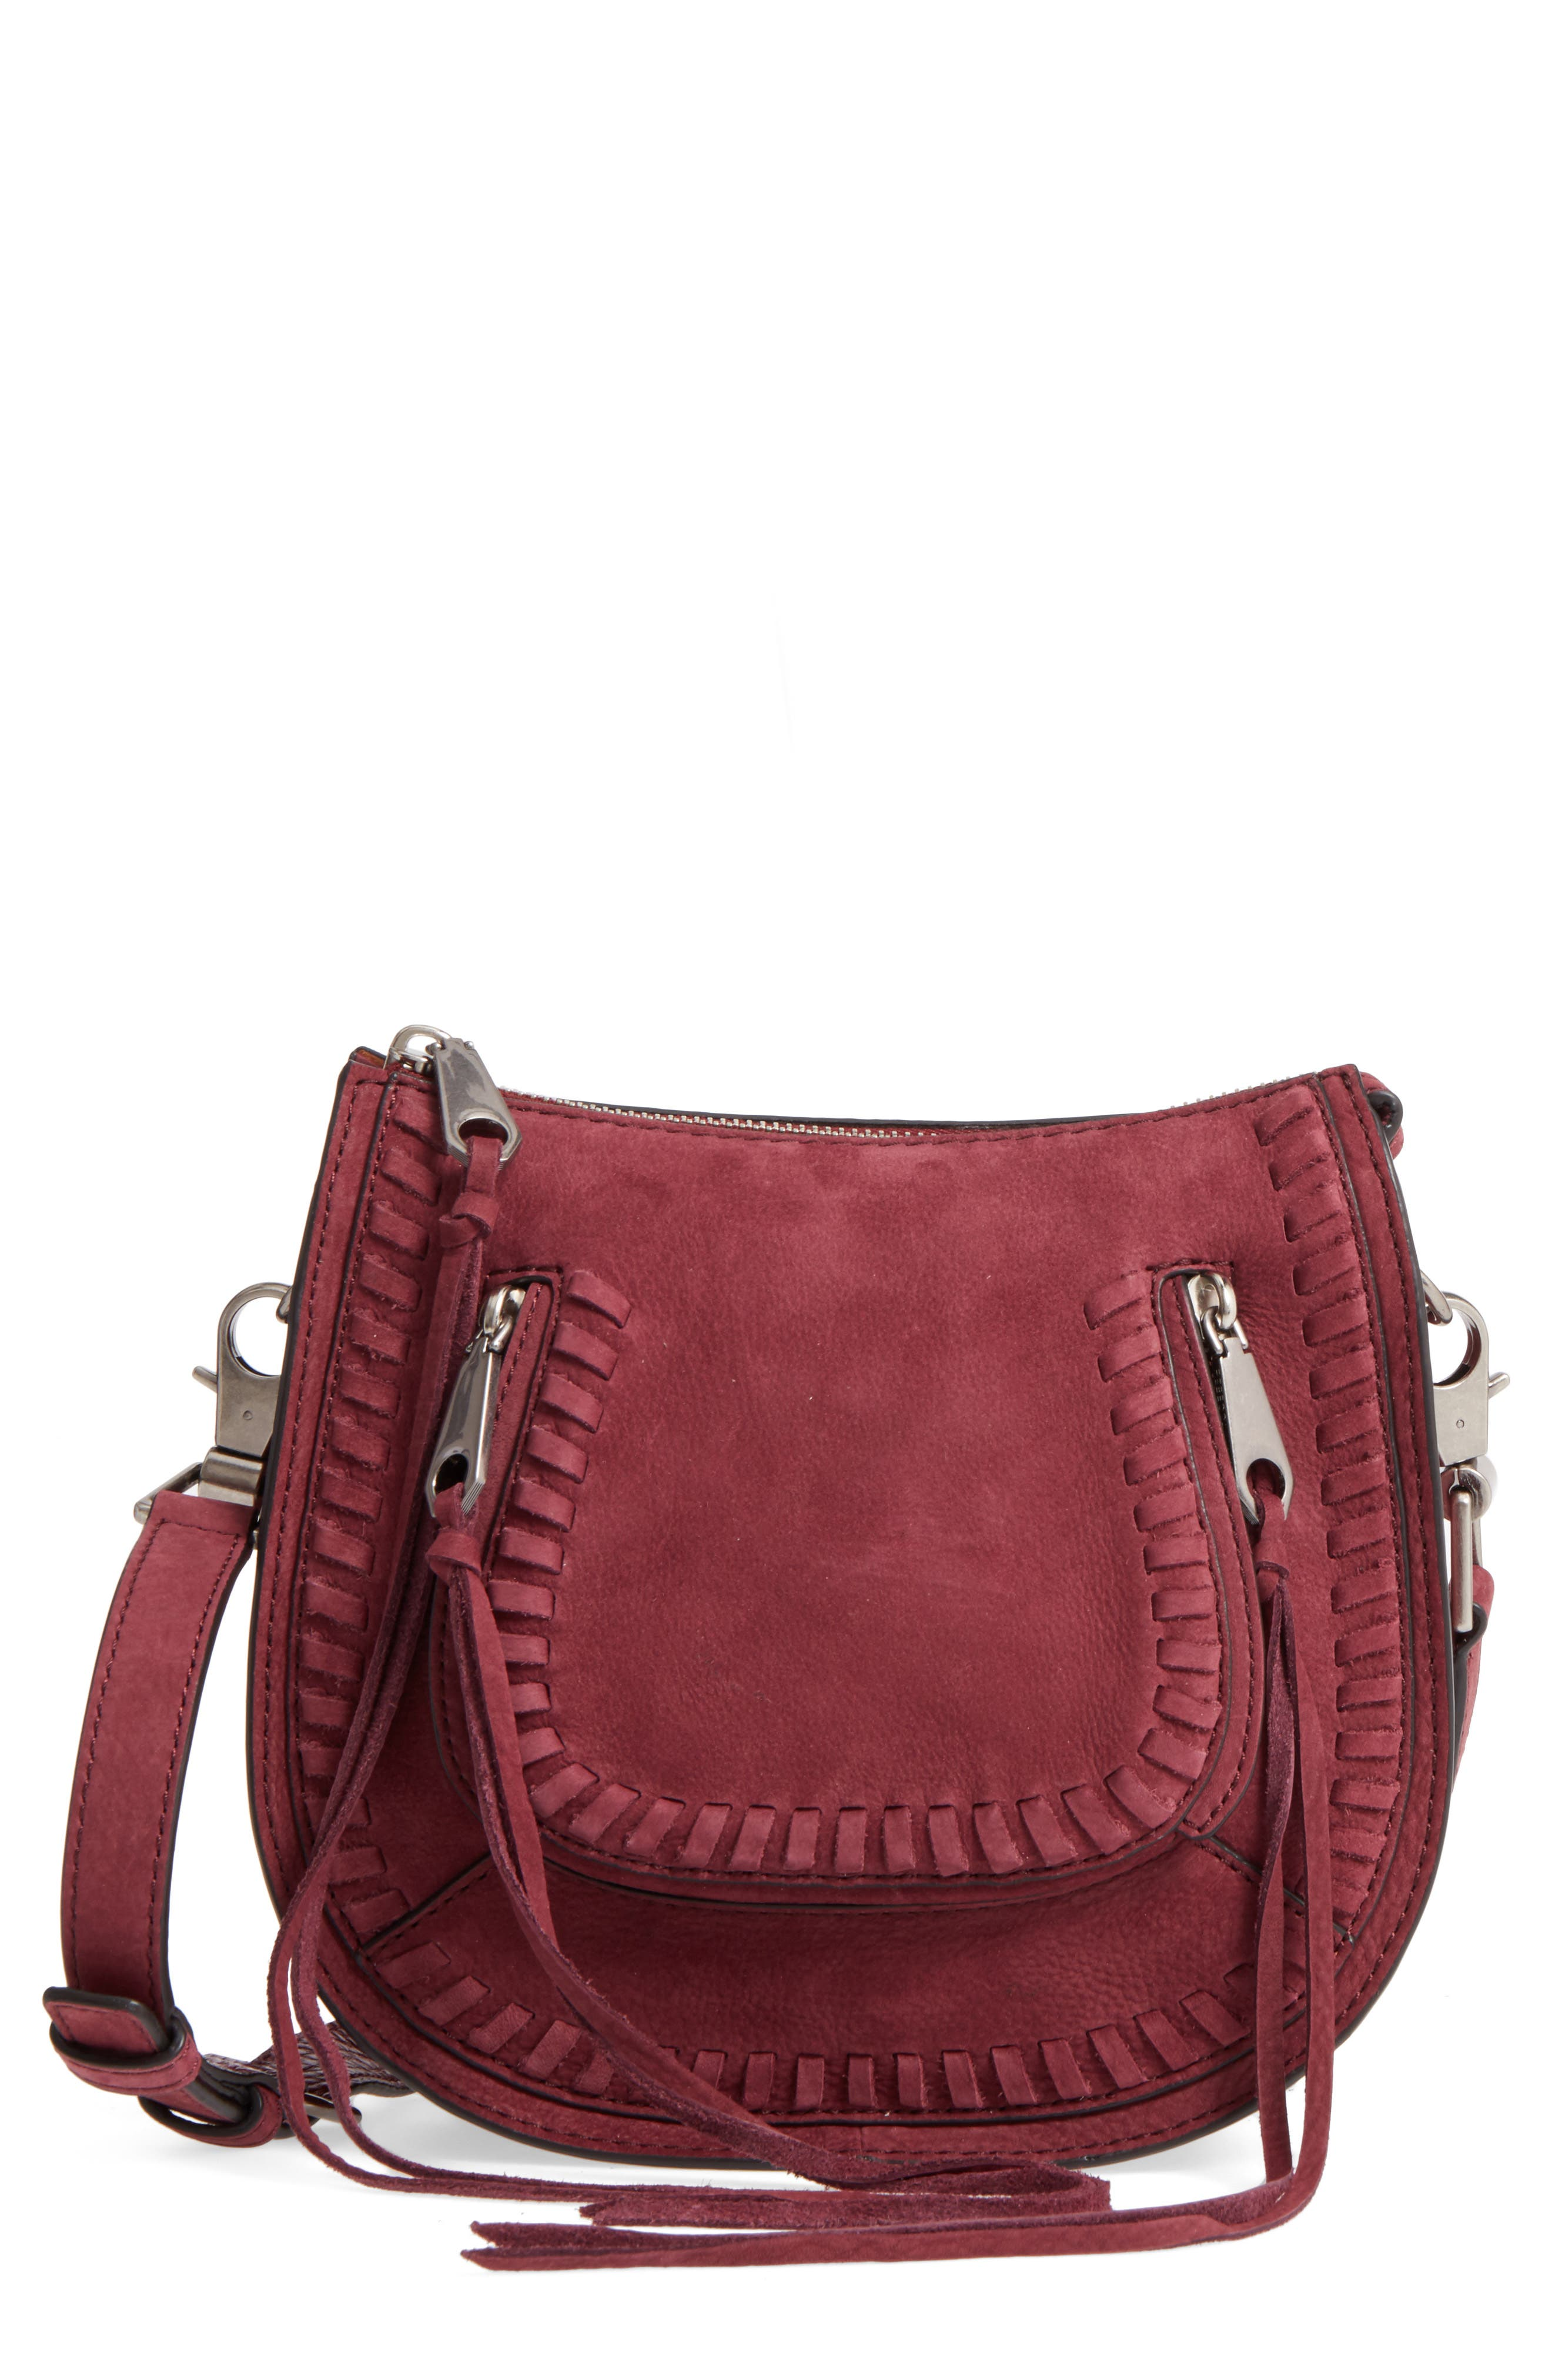 Rebecca Minkoff Mini Vanity Saddle Bag